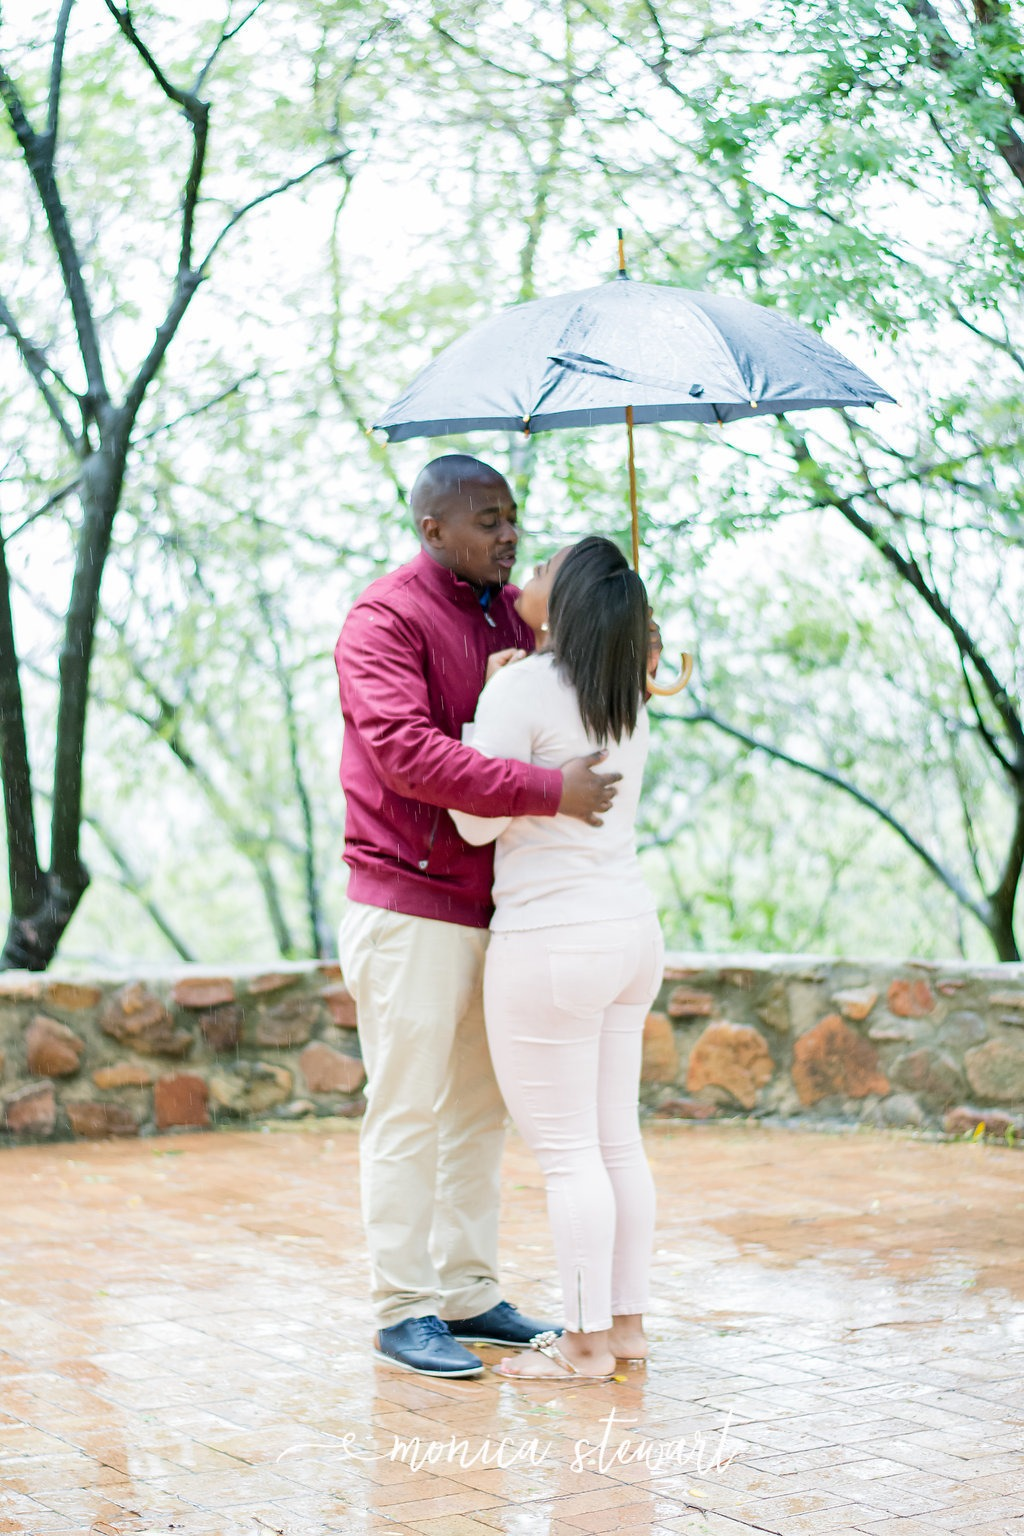 Andrew and Molebogeng proposal at Mount Grace